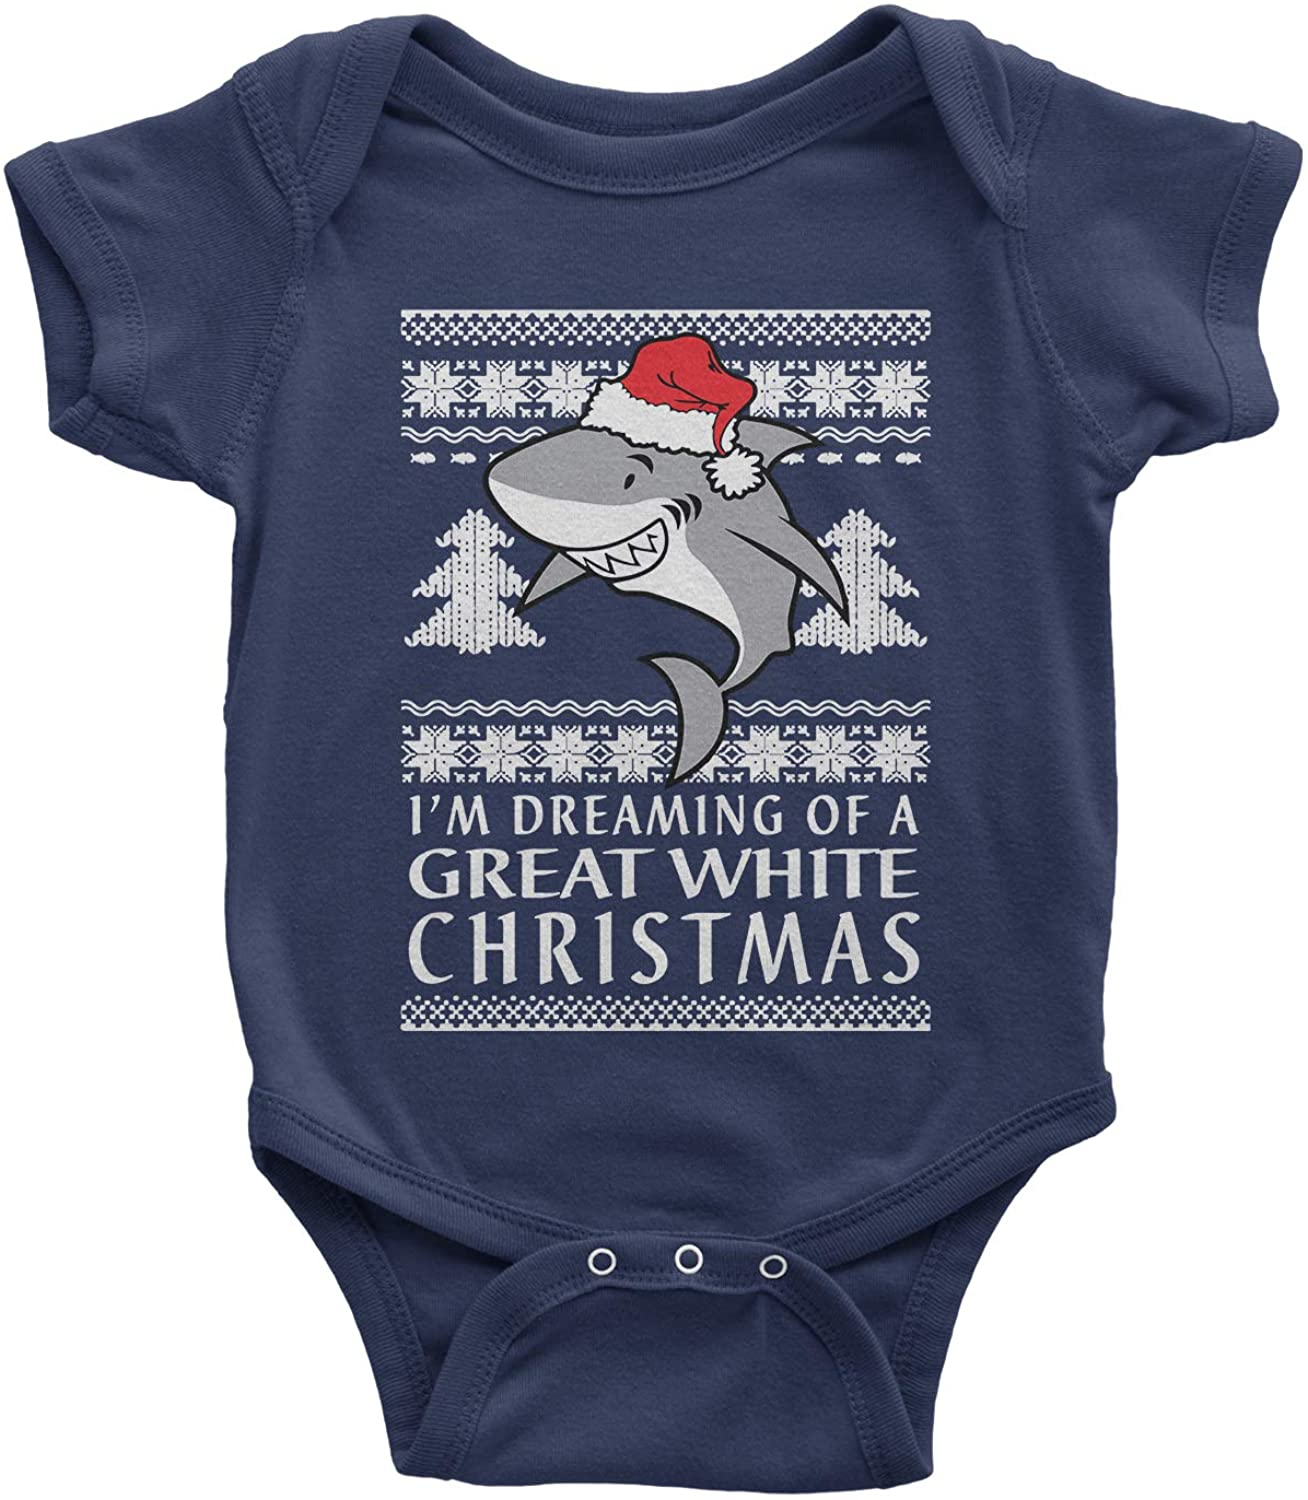 Expression Tees Dreaming of A Great White Christmas Infant One-Piece Romper Bodysuit